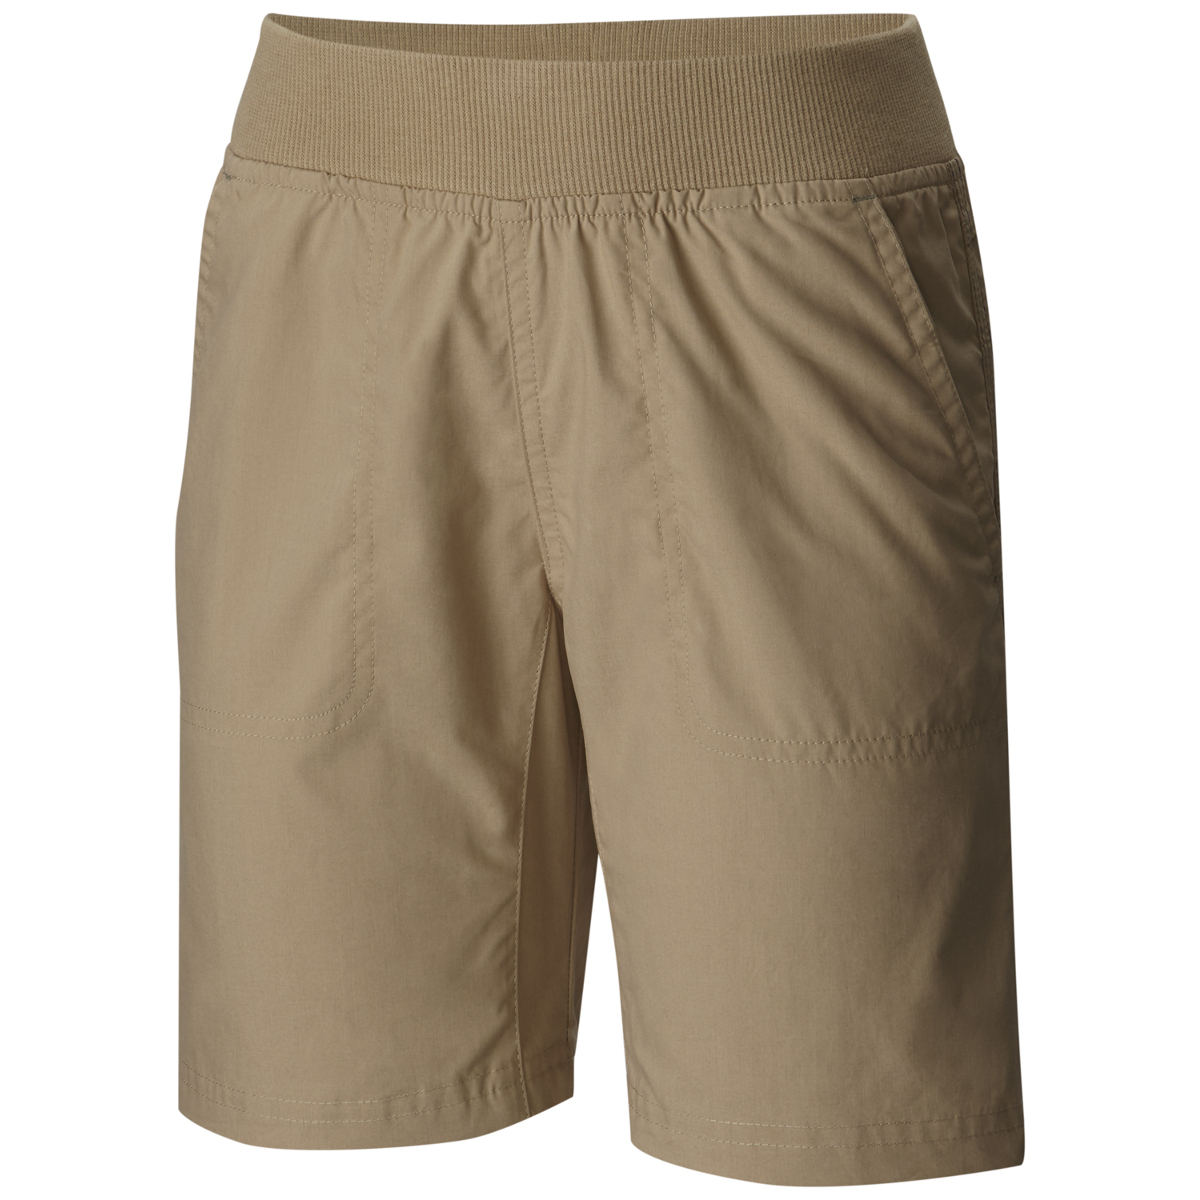 Columbia Boys' 5 Oaks Ii Pull-On Shorts - Brown, L